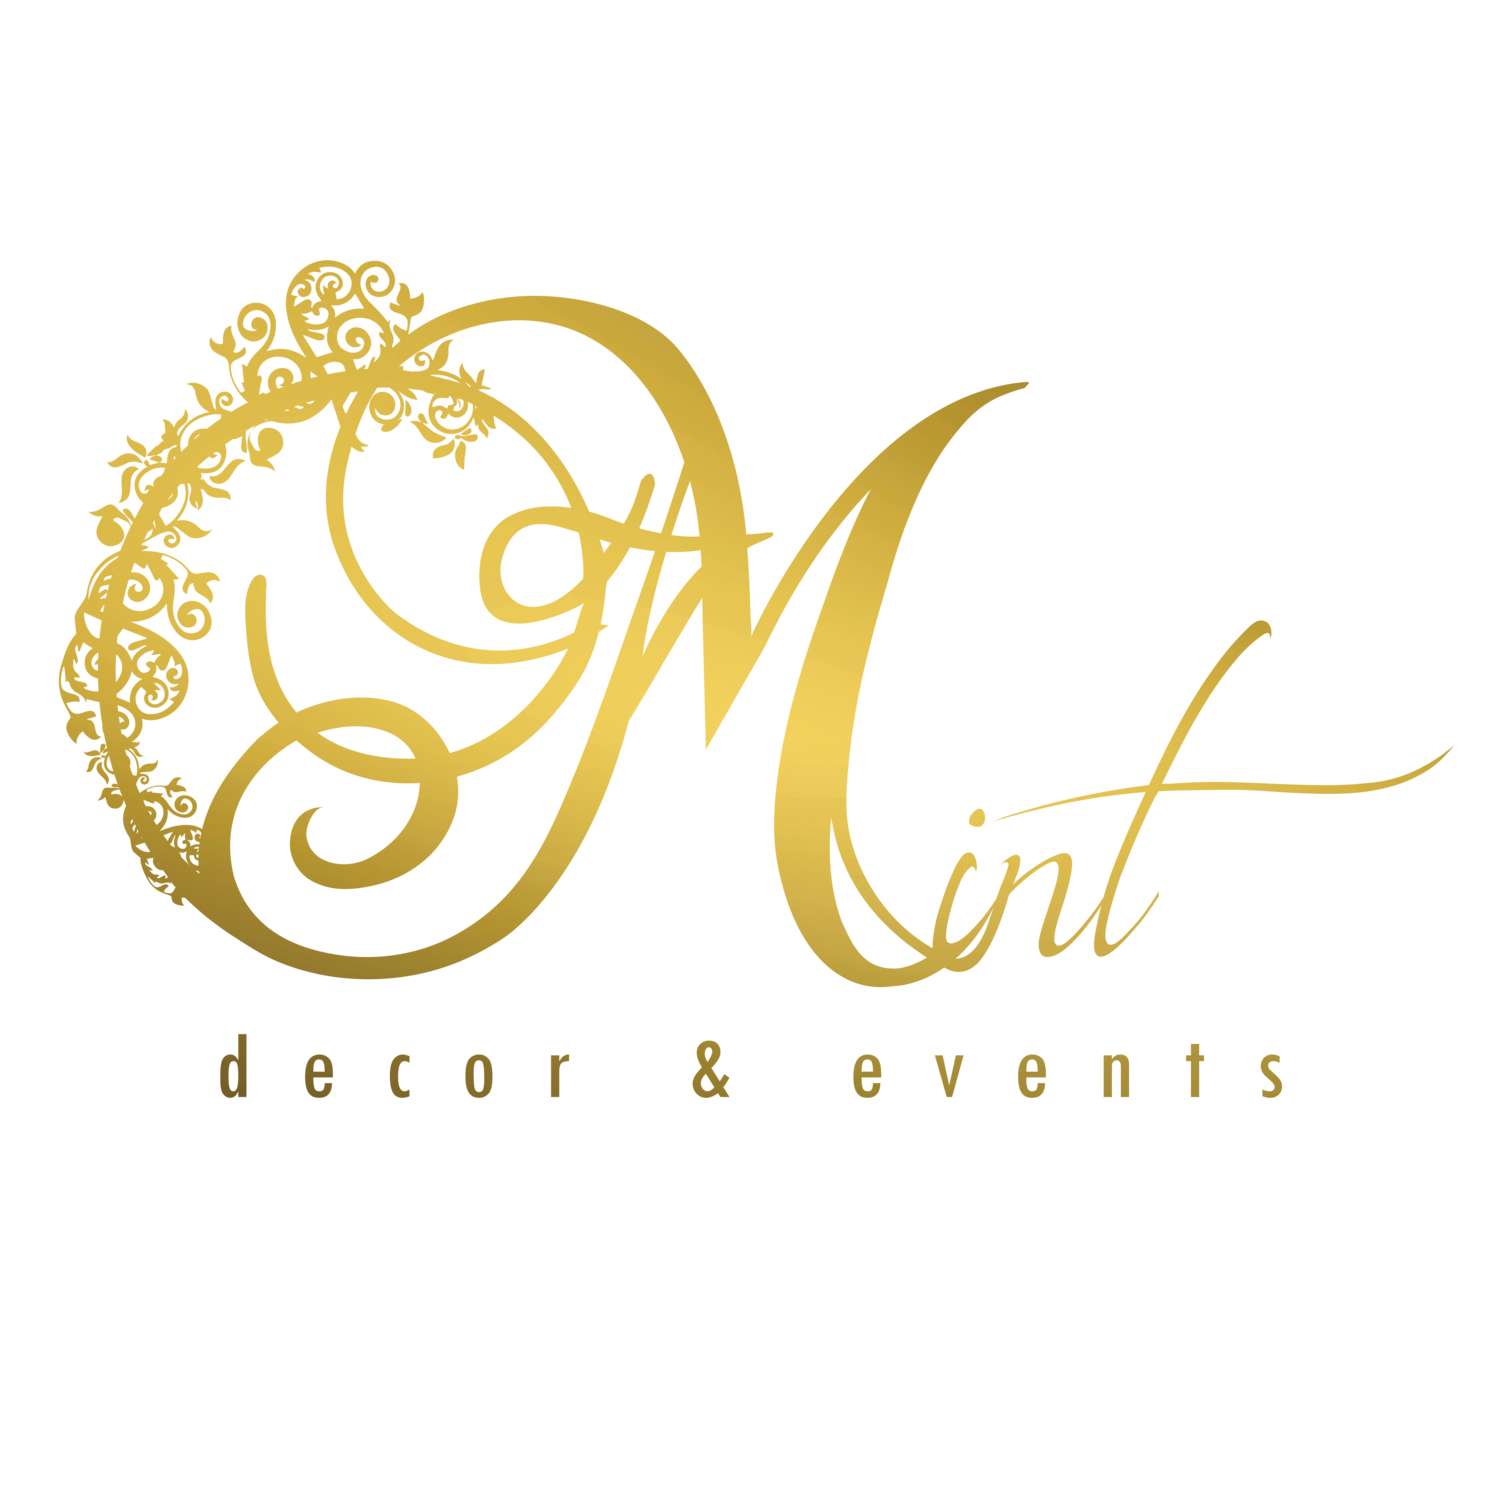 Mint Decor & Events